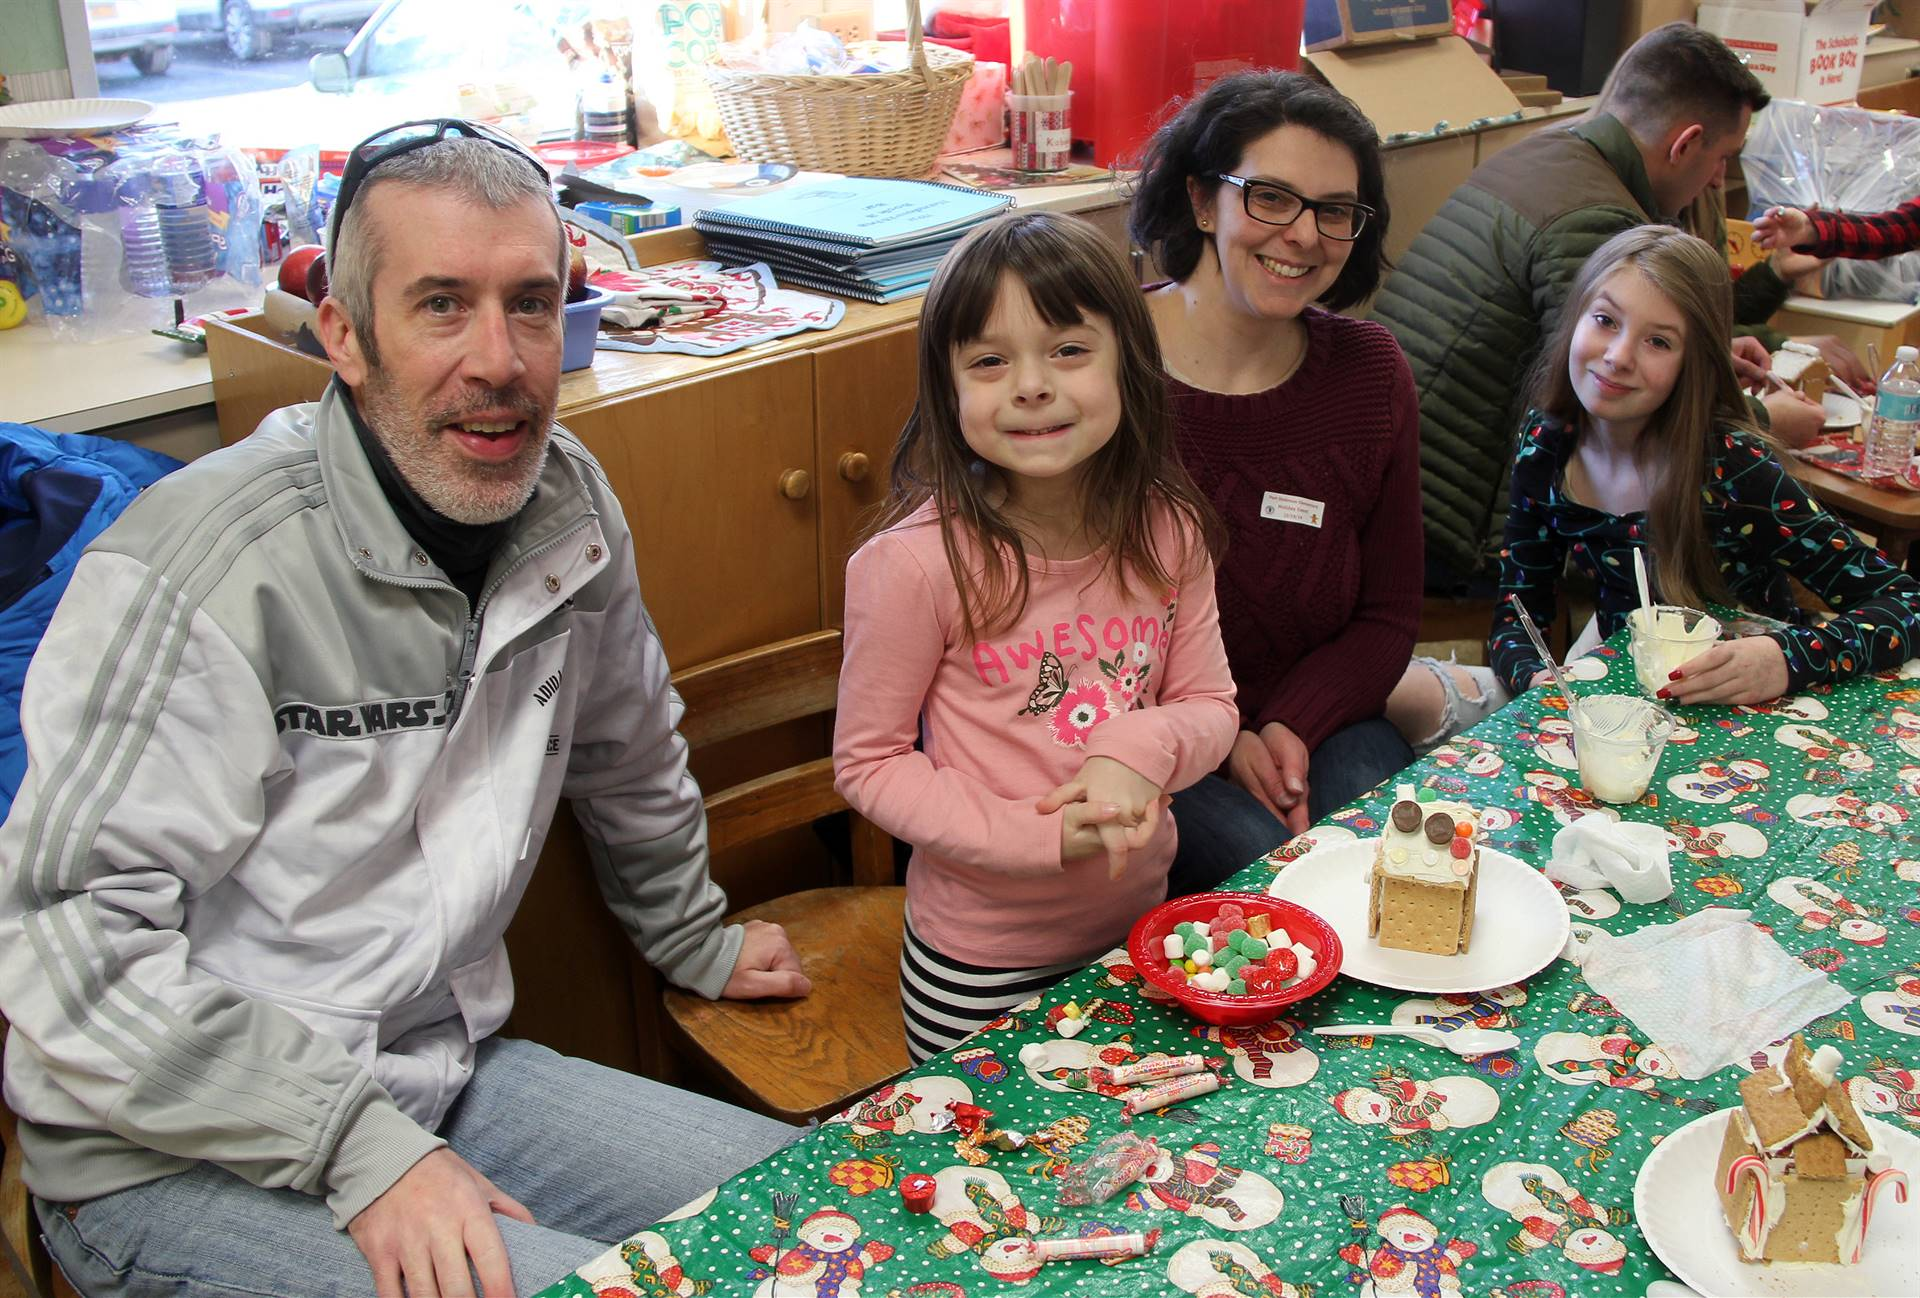 four people smiling next to gingerbread house